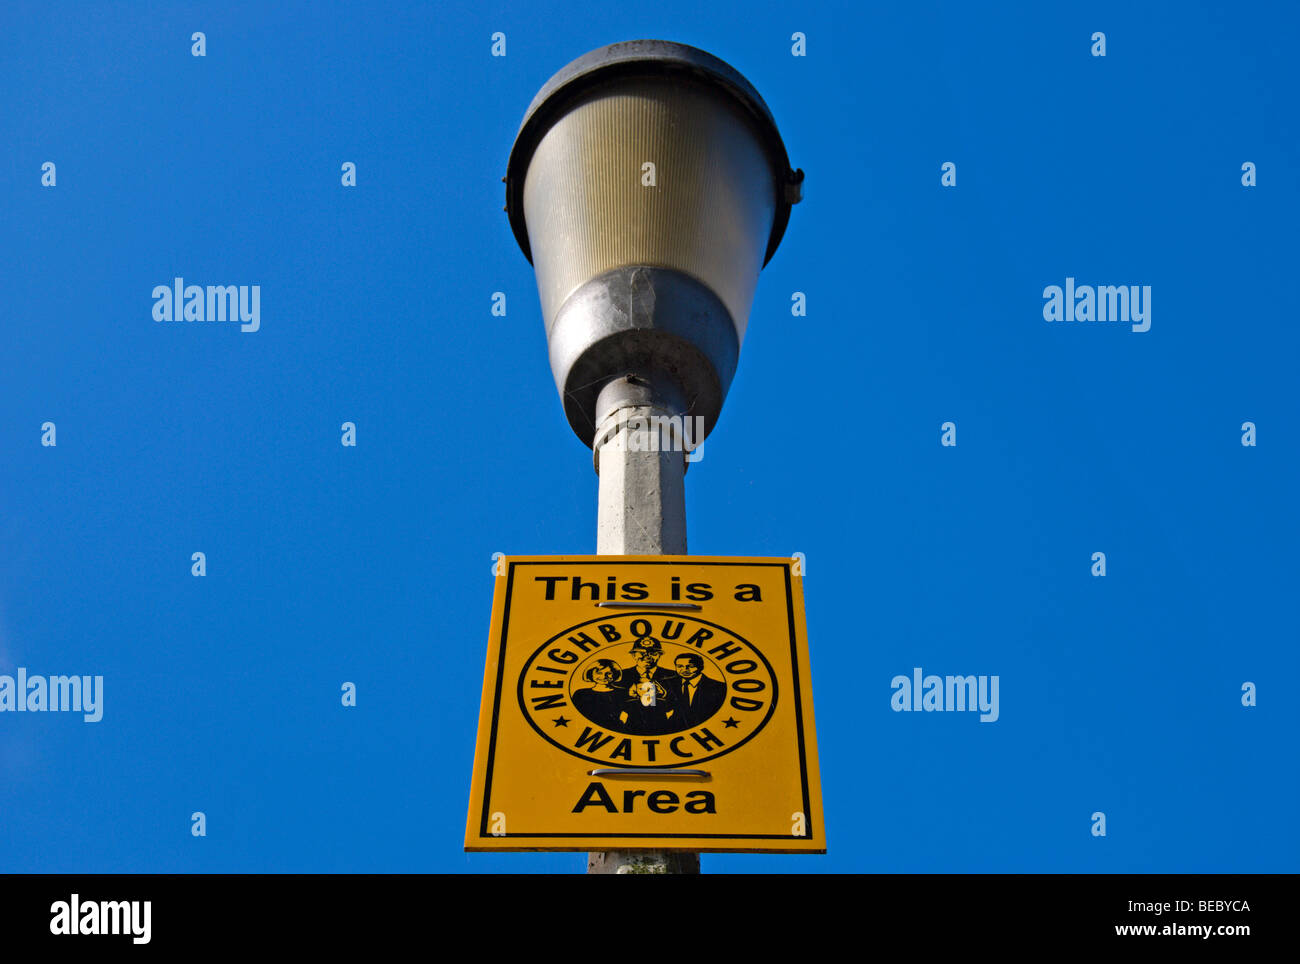 this is a neighbourhood watch area sign fixed to a lamppost in bedford park, chiswick, west london, england - Stock Image